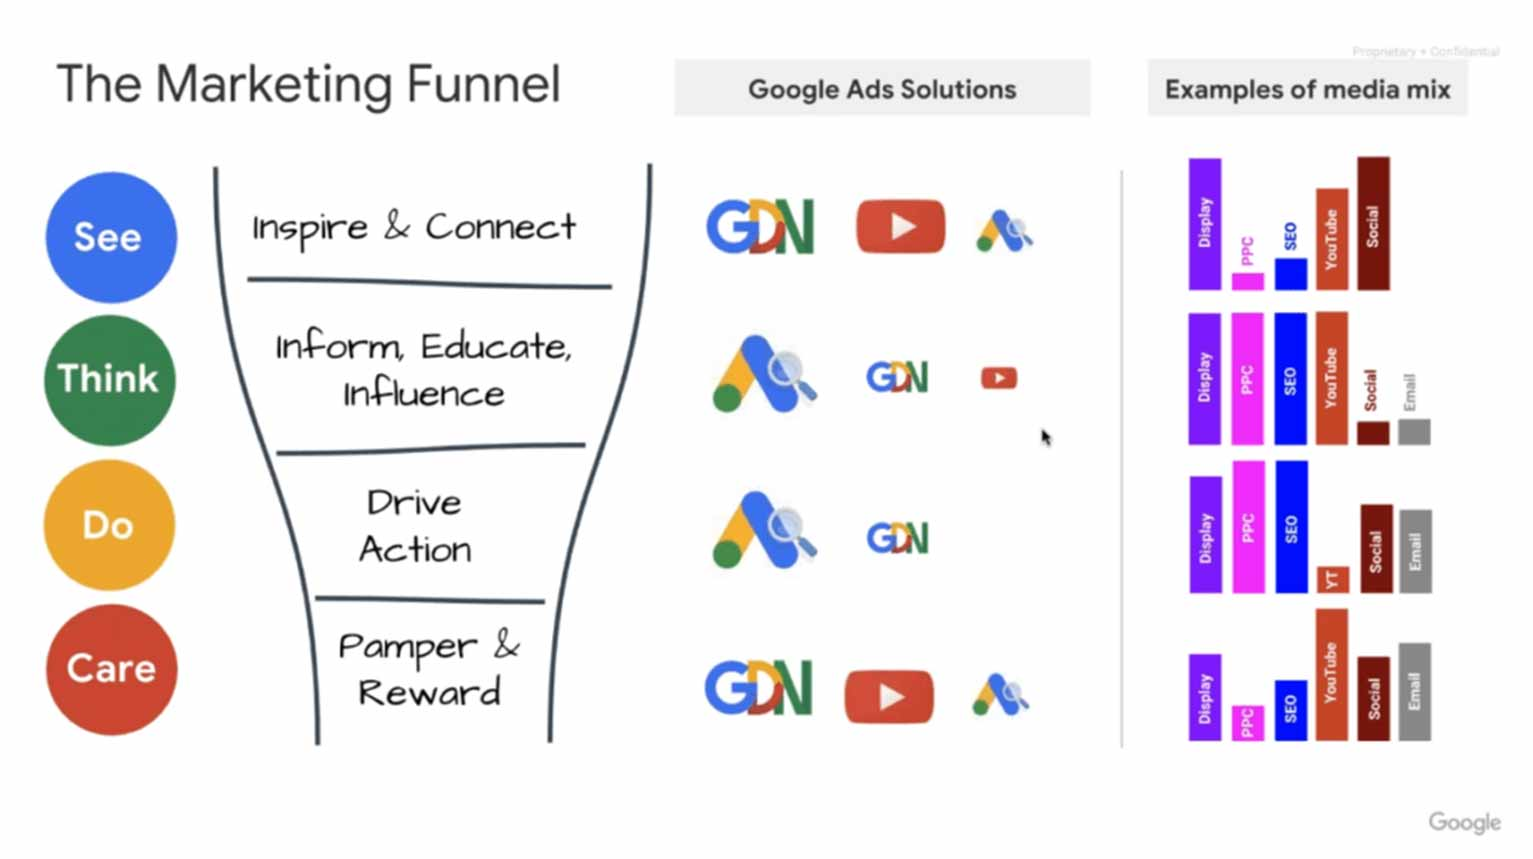 This image from an AdEspresso and Hootsuite Ads webinar shows how the different Google Ads solutions fit into the buyer's journey.